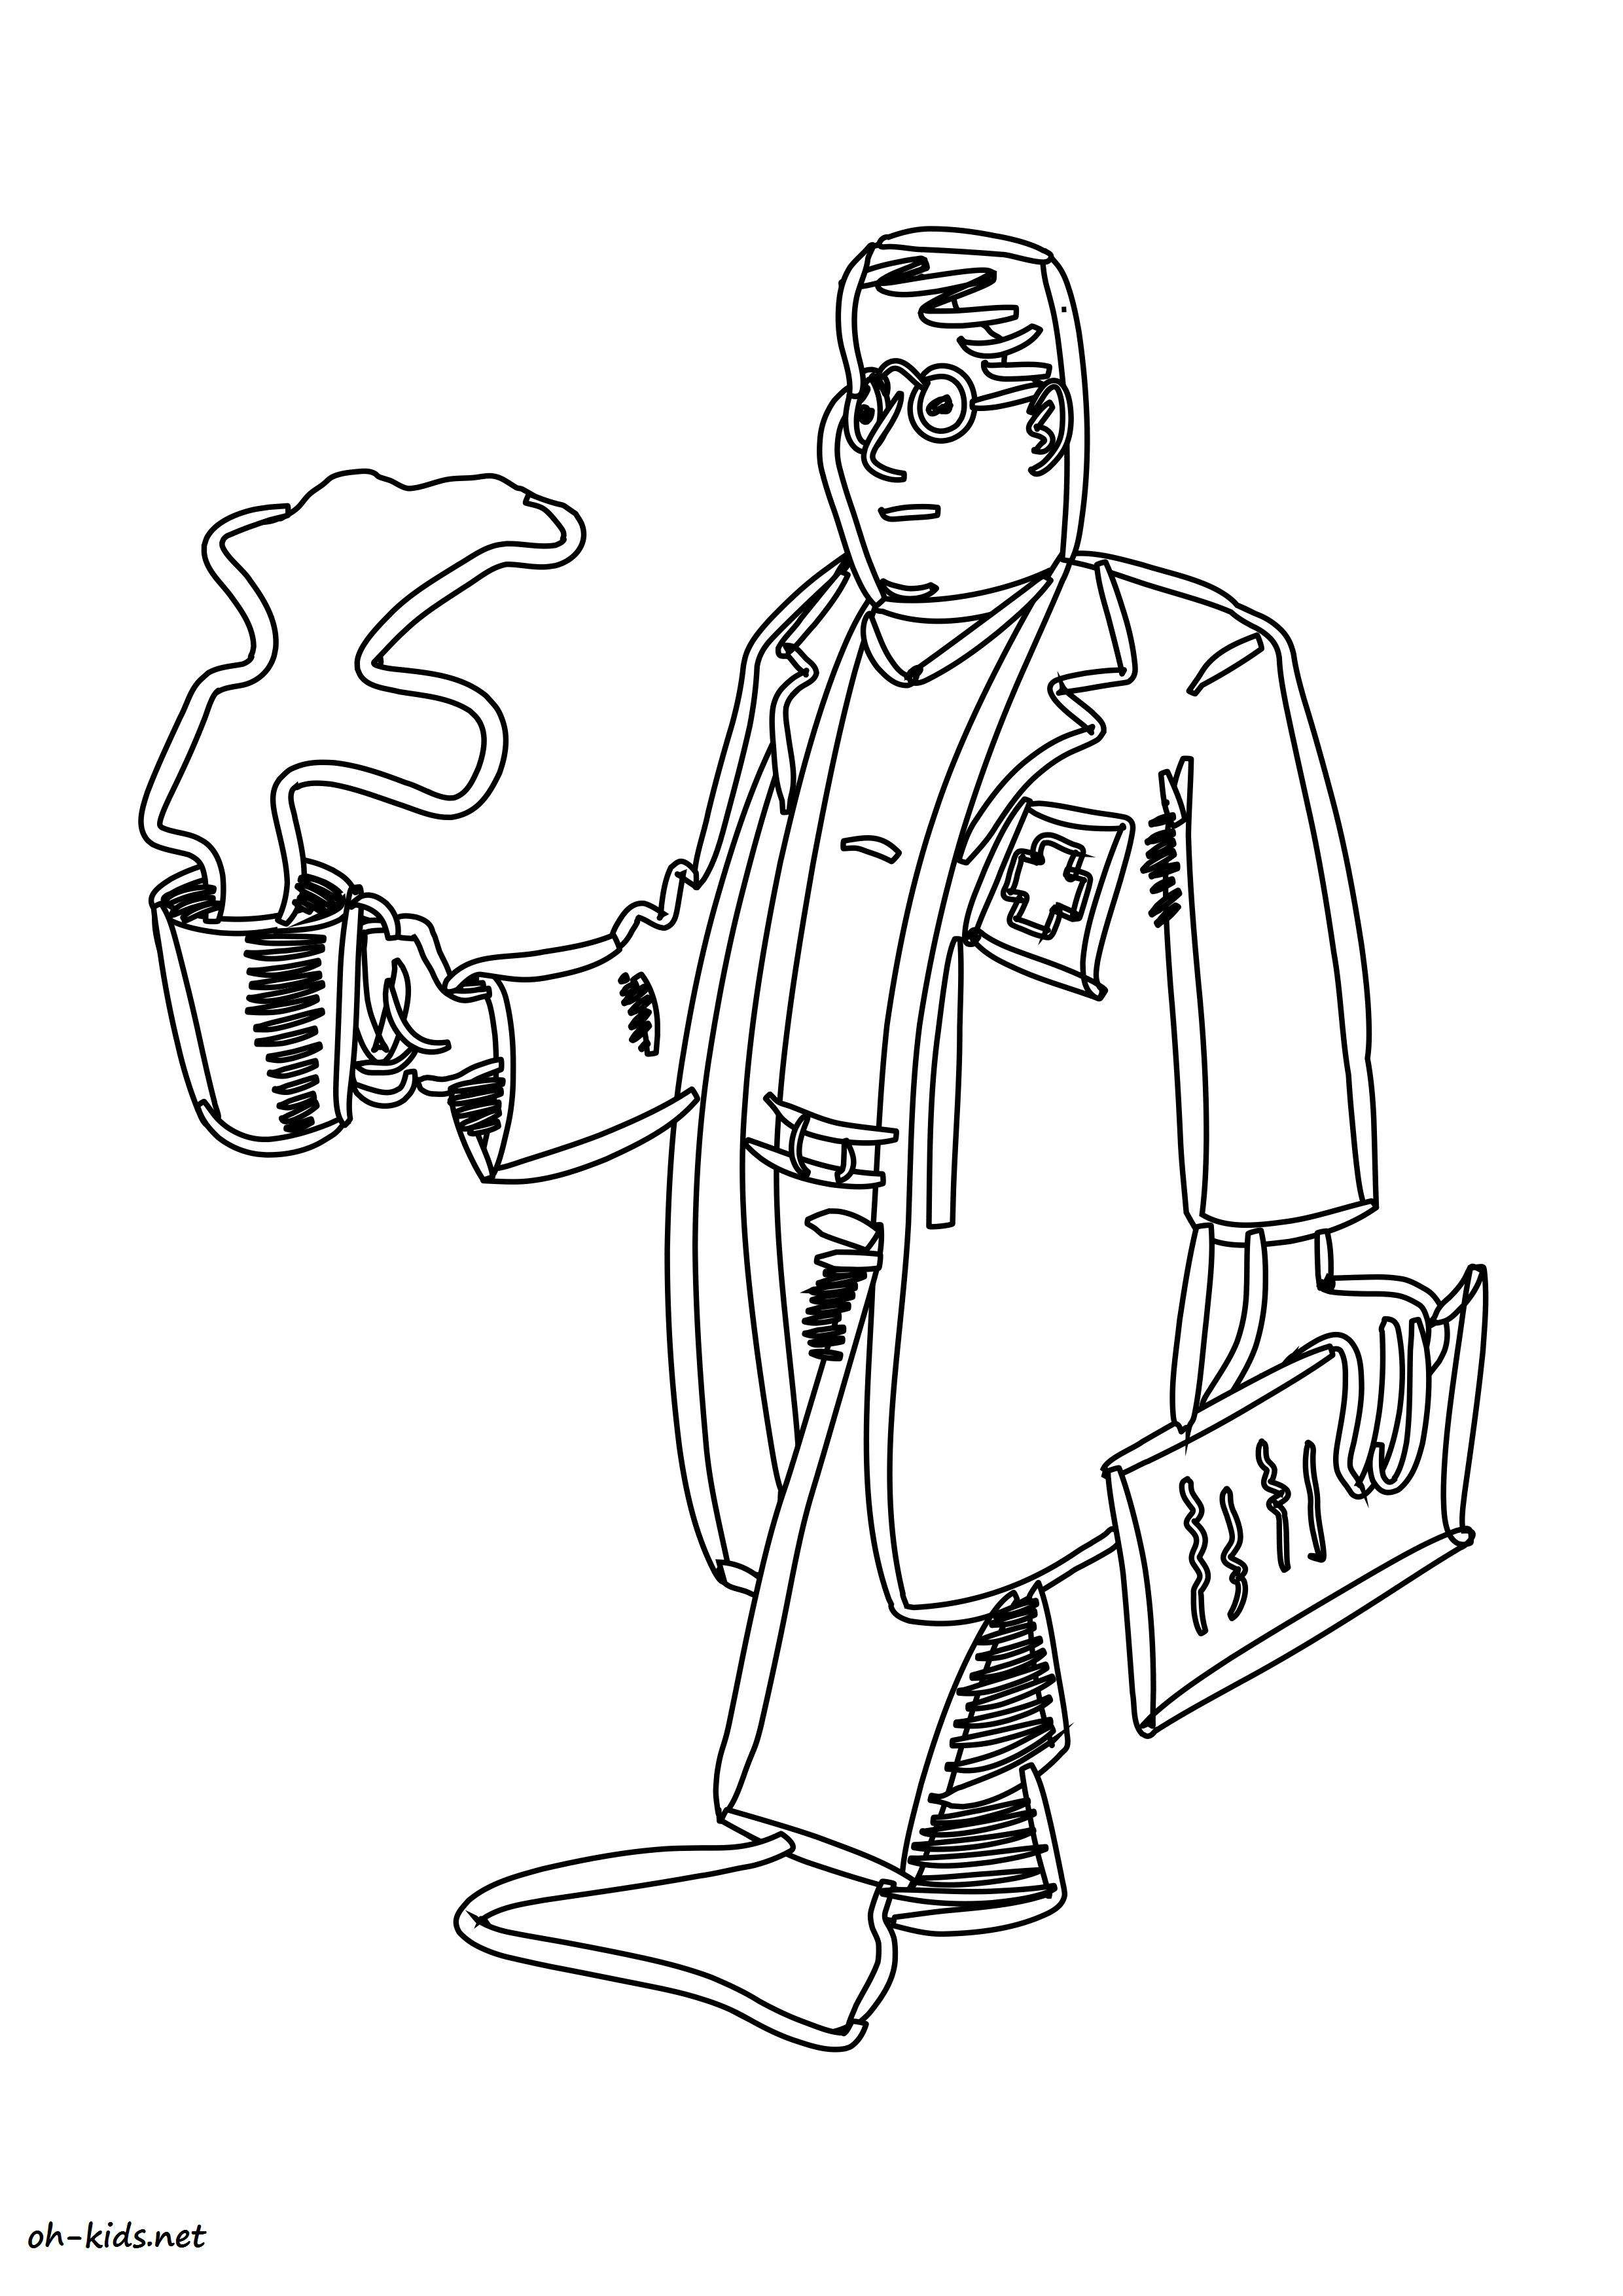 Coloriage personnages page 6 of 17 oh kids fr - Coloriage docteur ...